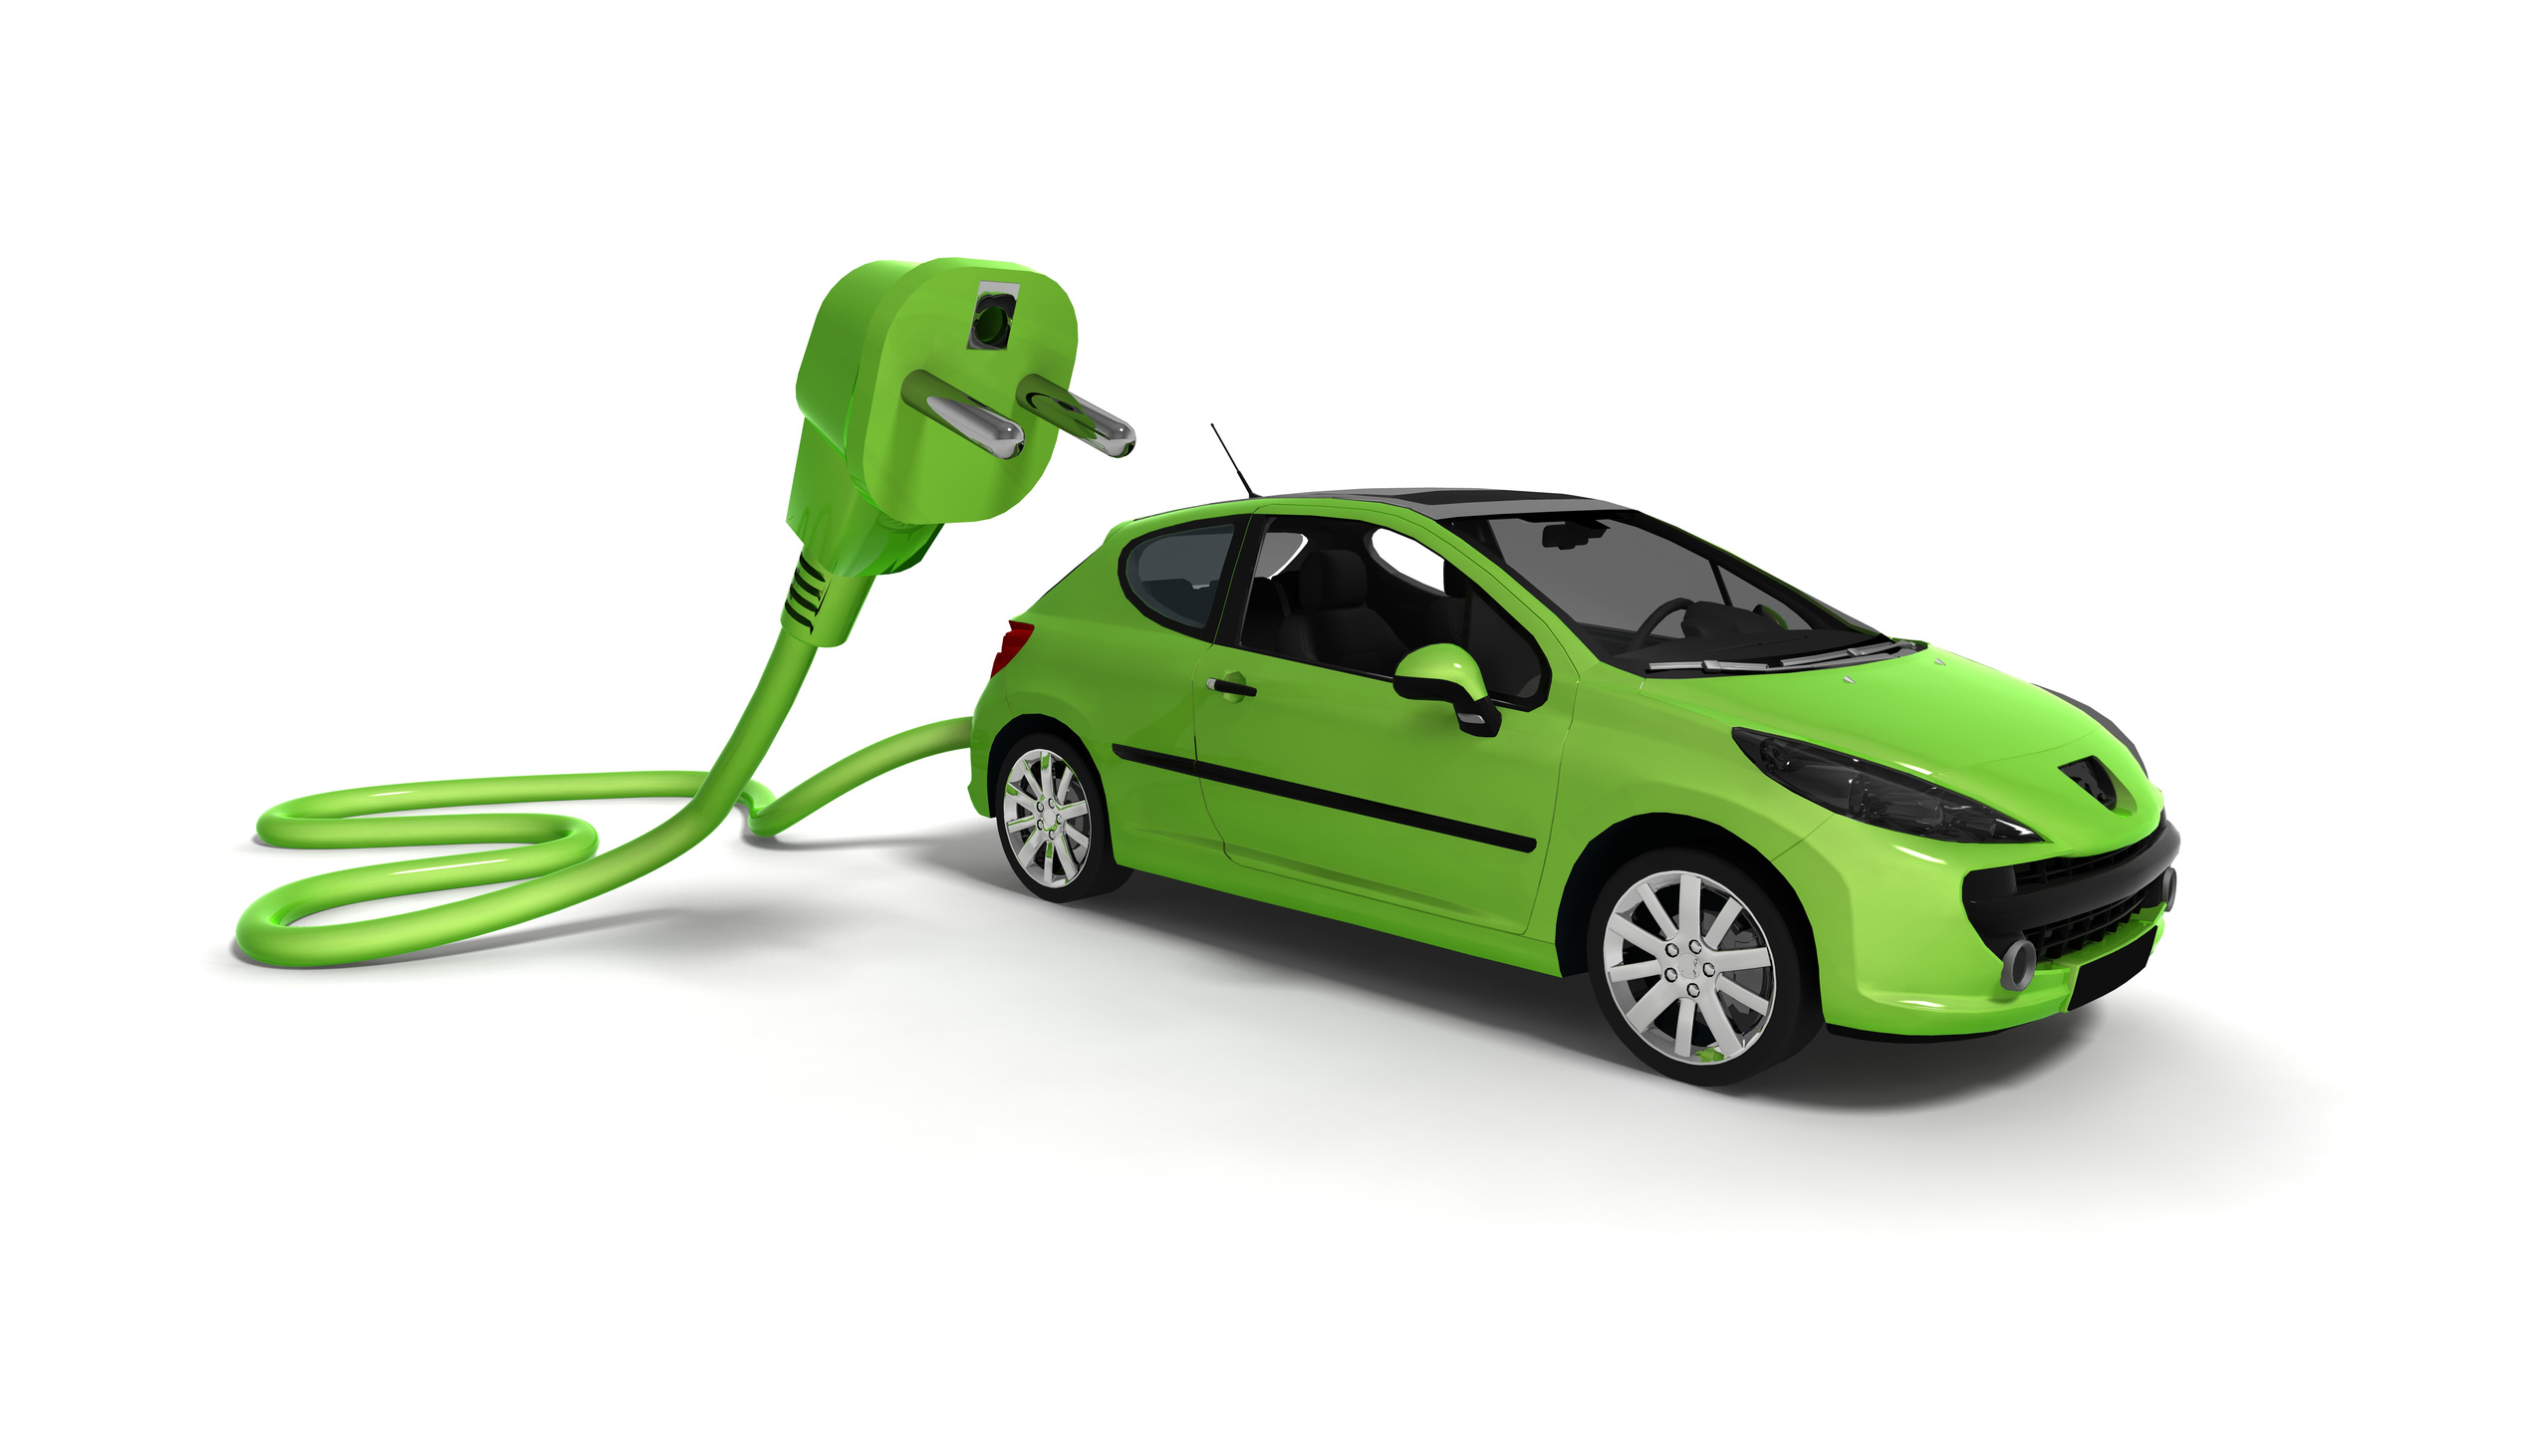 http://www.evwind.es/wp-content/uploads/2012/07/electric-vehicles.jpg